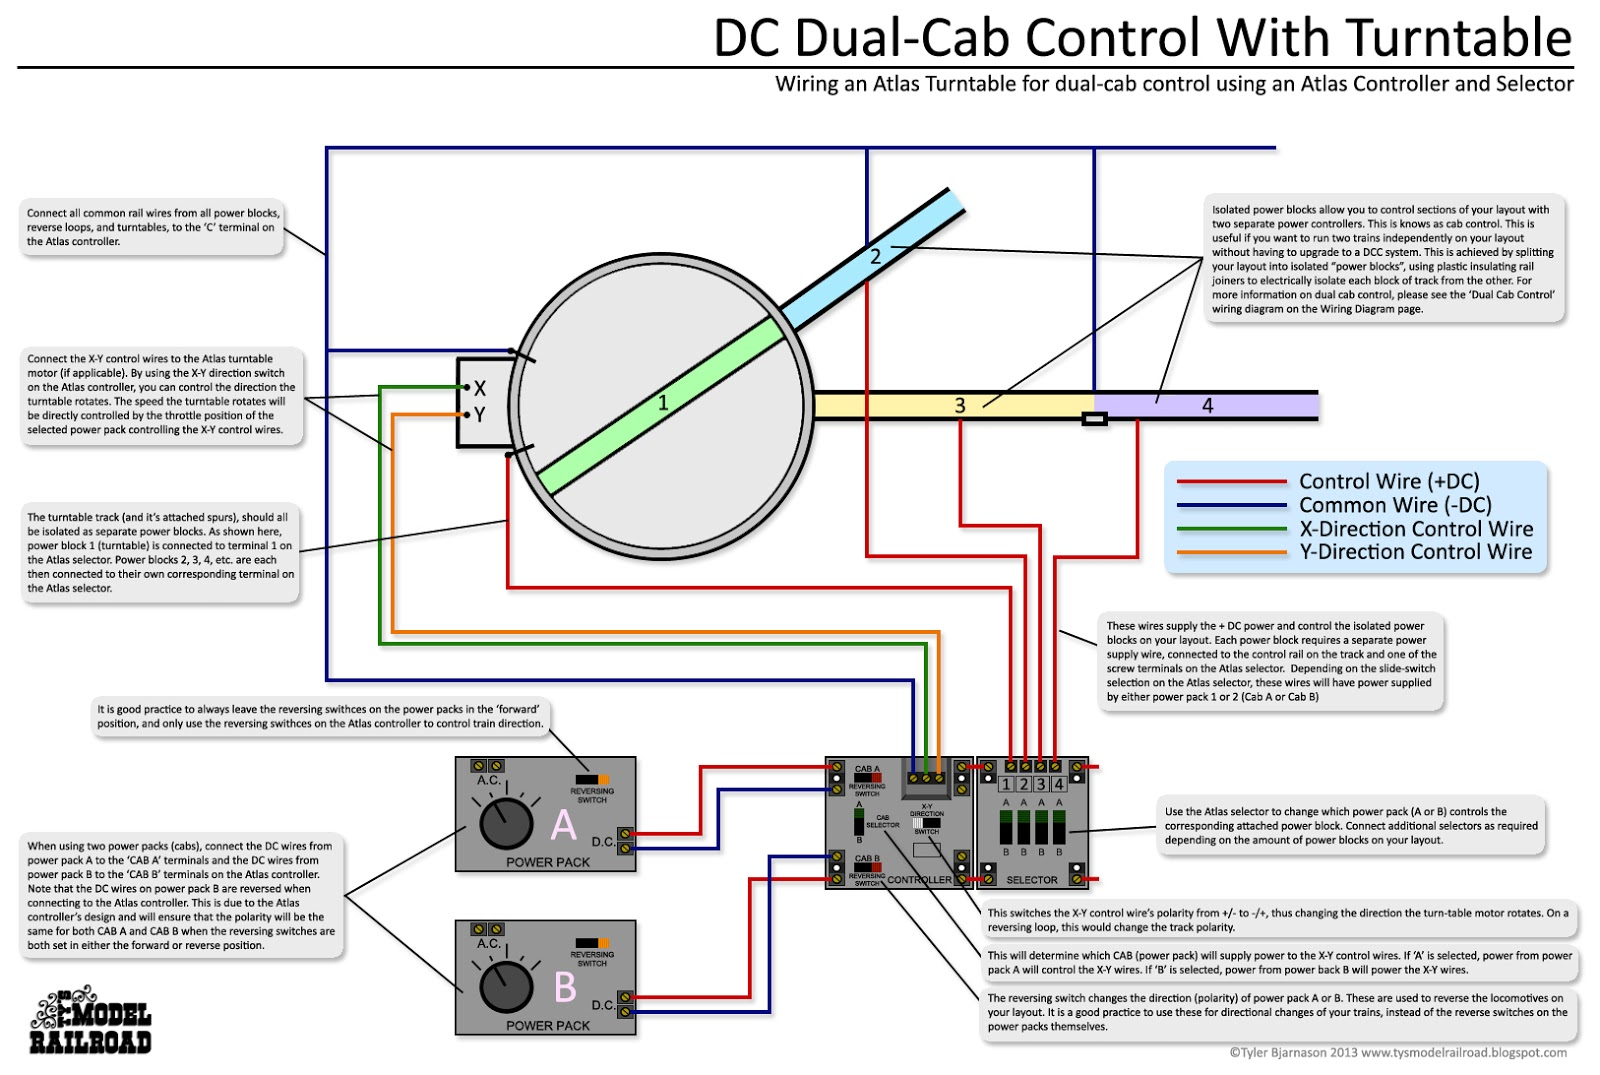 Snap Switch Wiring Diagram Libraries Atlas Intercom Diagrams Todaystyu0027s Model Railroad Drawings